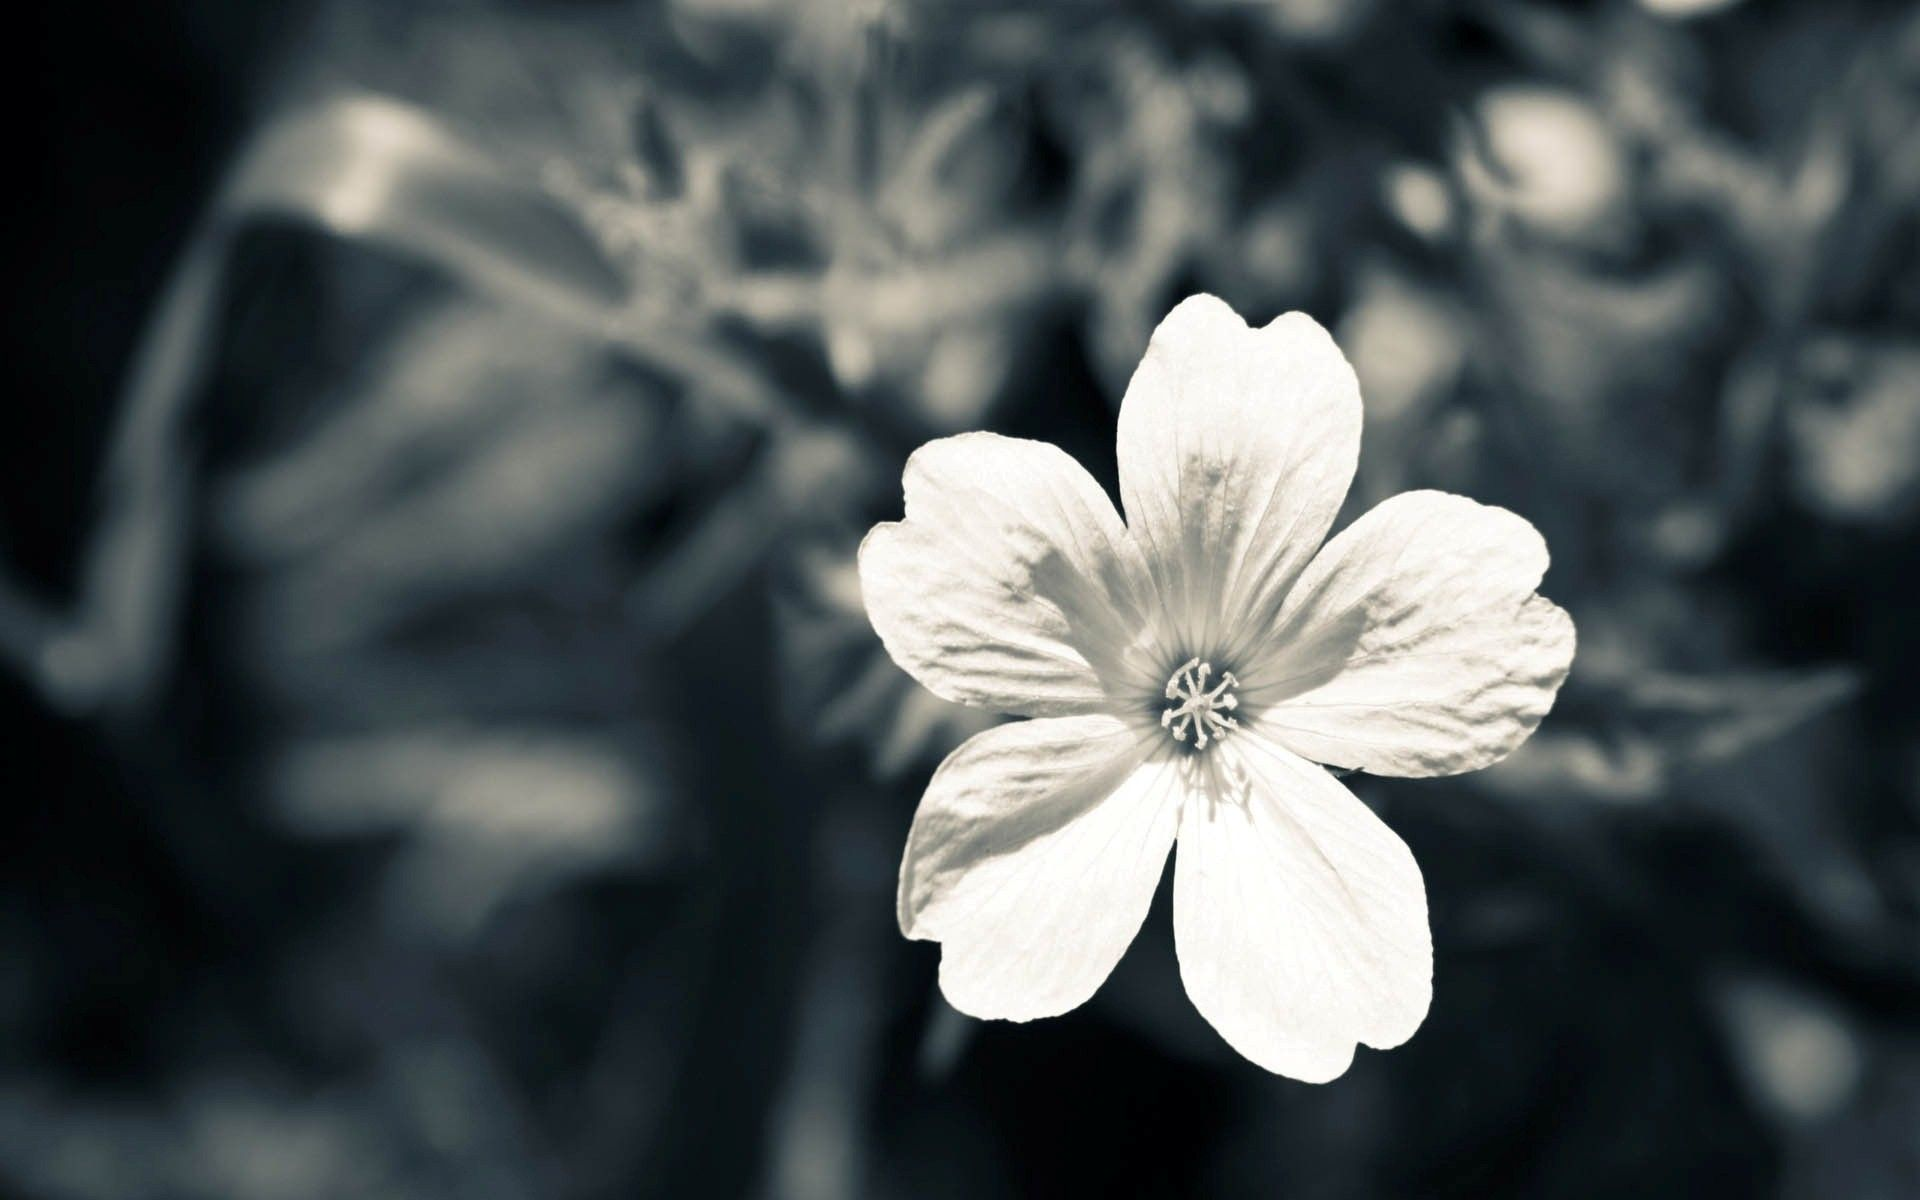 Black And White Flowers Wallpapers Hdq Wallpapers